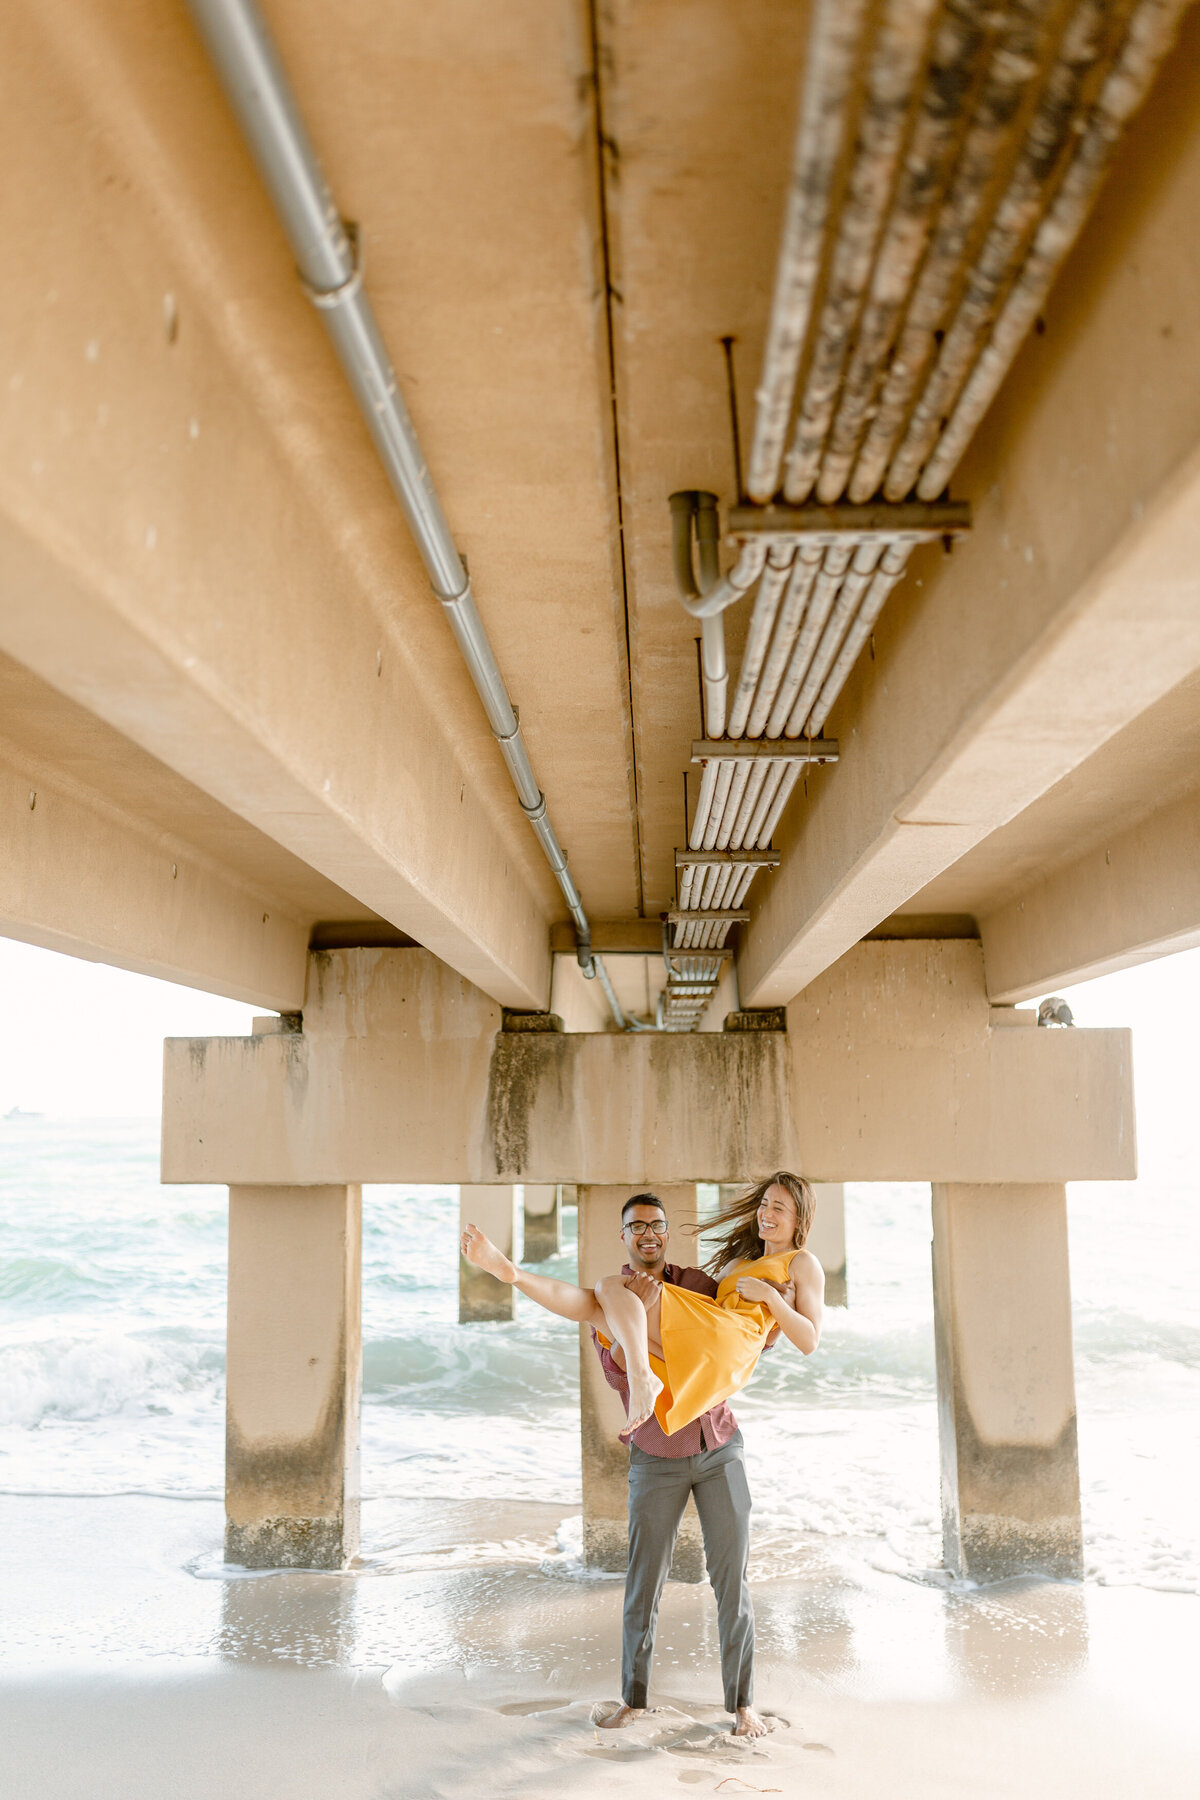 Sunny Isles Beach Engagement Photography Session 9